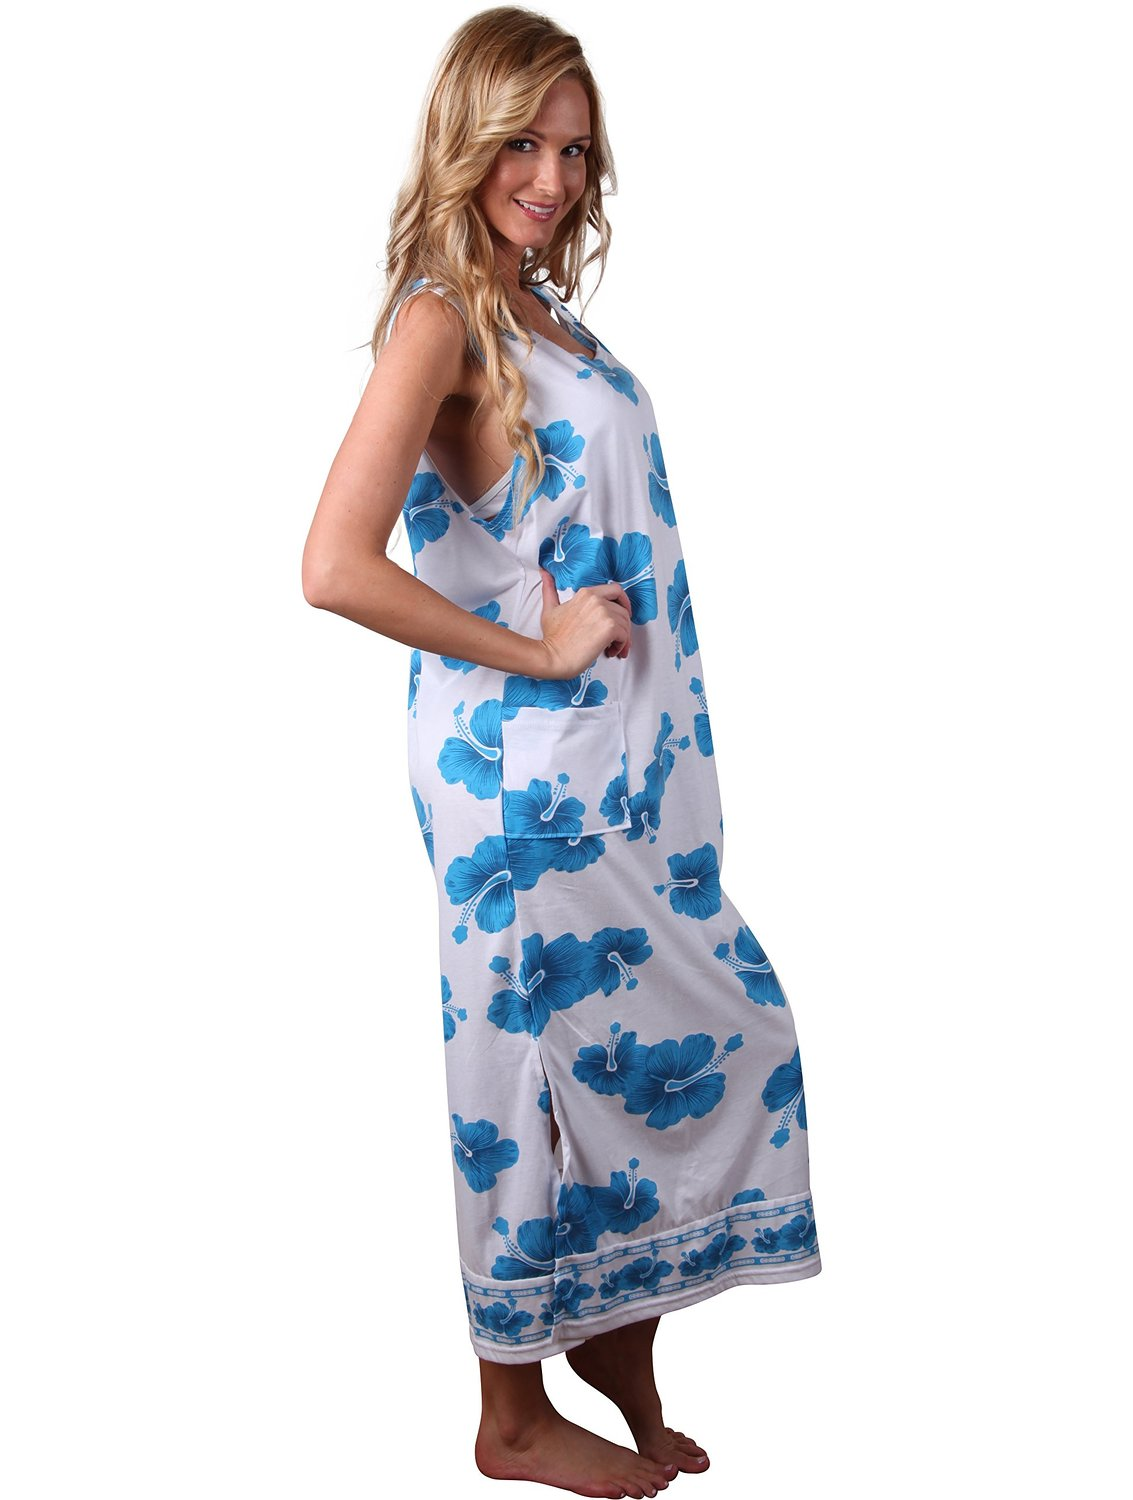 Hit the beach in a trendy bathing suit cover-up or beach dress from Venus today! Shop our collection of bathing suit & swimwear cover-ups, skirts & wraps. With the ability to wear them from a day in the sun to a casual night out anything is possible.